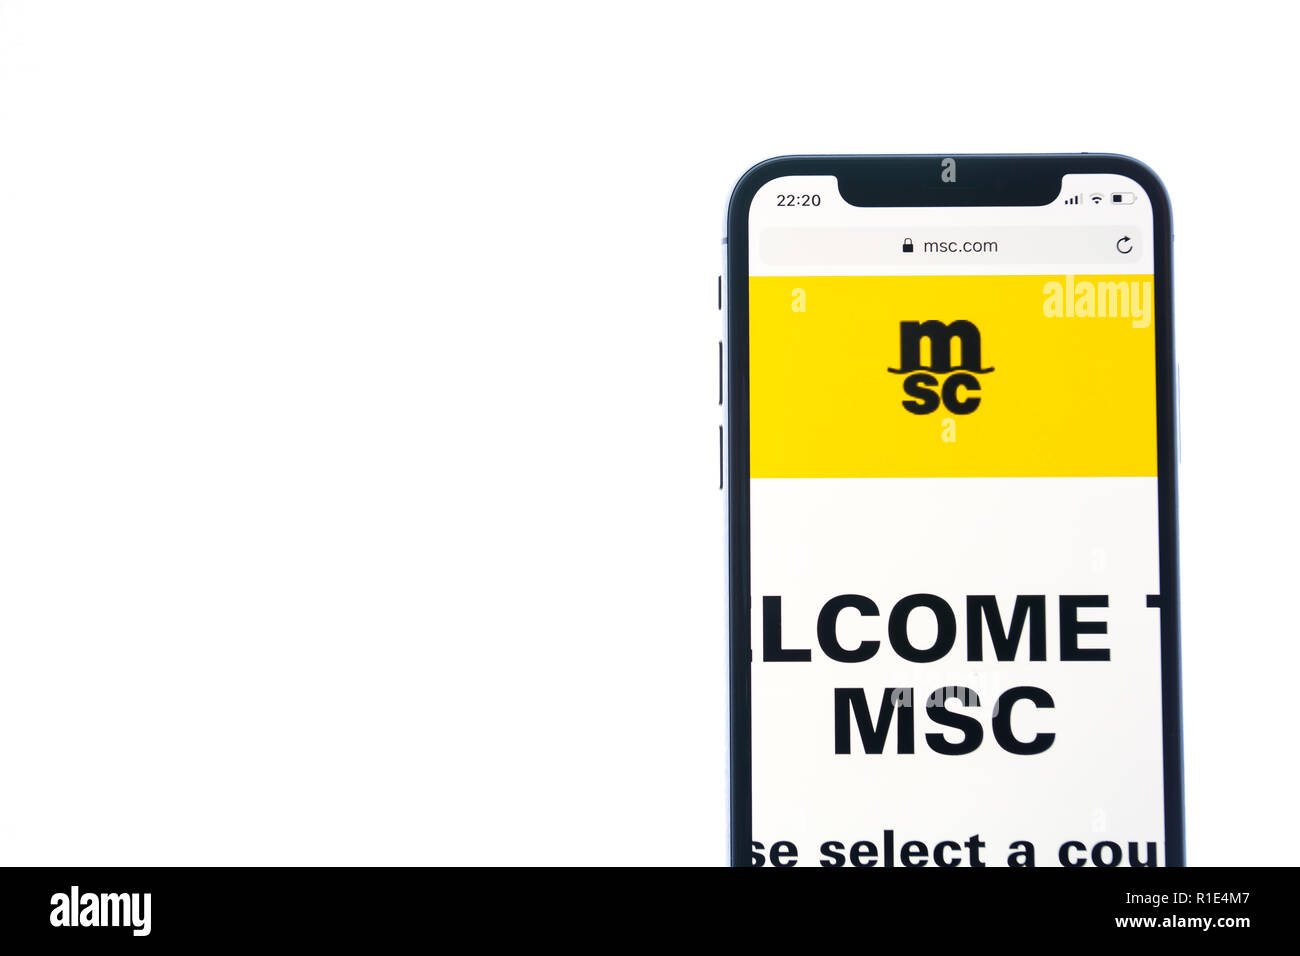 SOLOTHURN, SWITZERLAND - NOVEMBER 11, 2018: MSC logo displayed on a modern smartphone - Stock Image